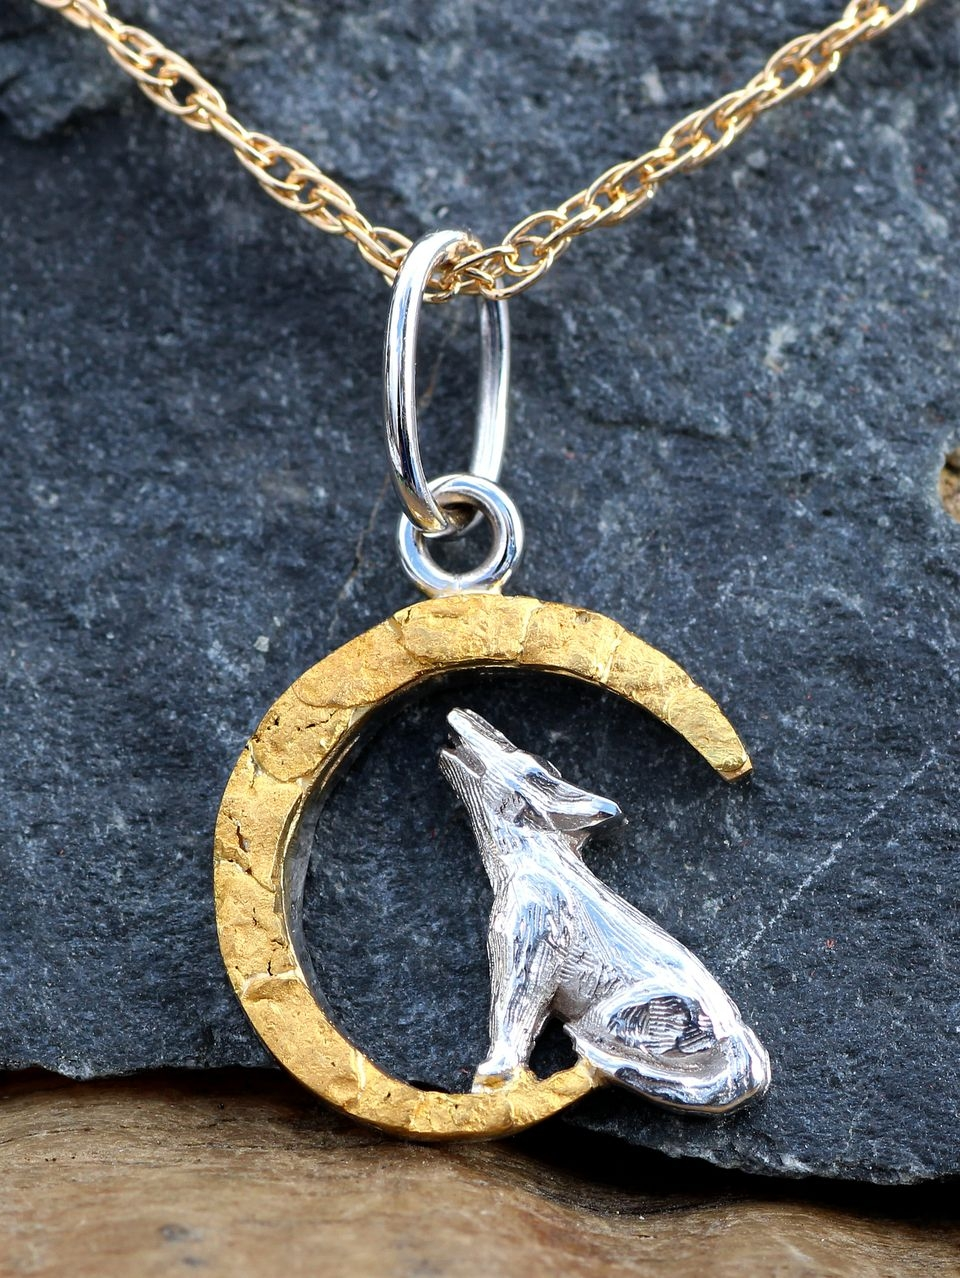 Wild Alaska Howling Wolf Pendant Crafted in 14kt White Gold with Natural Alaskan Gold Nuggets